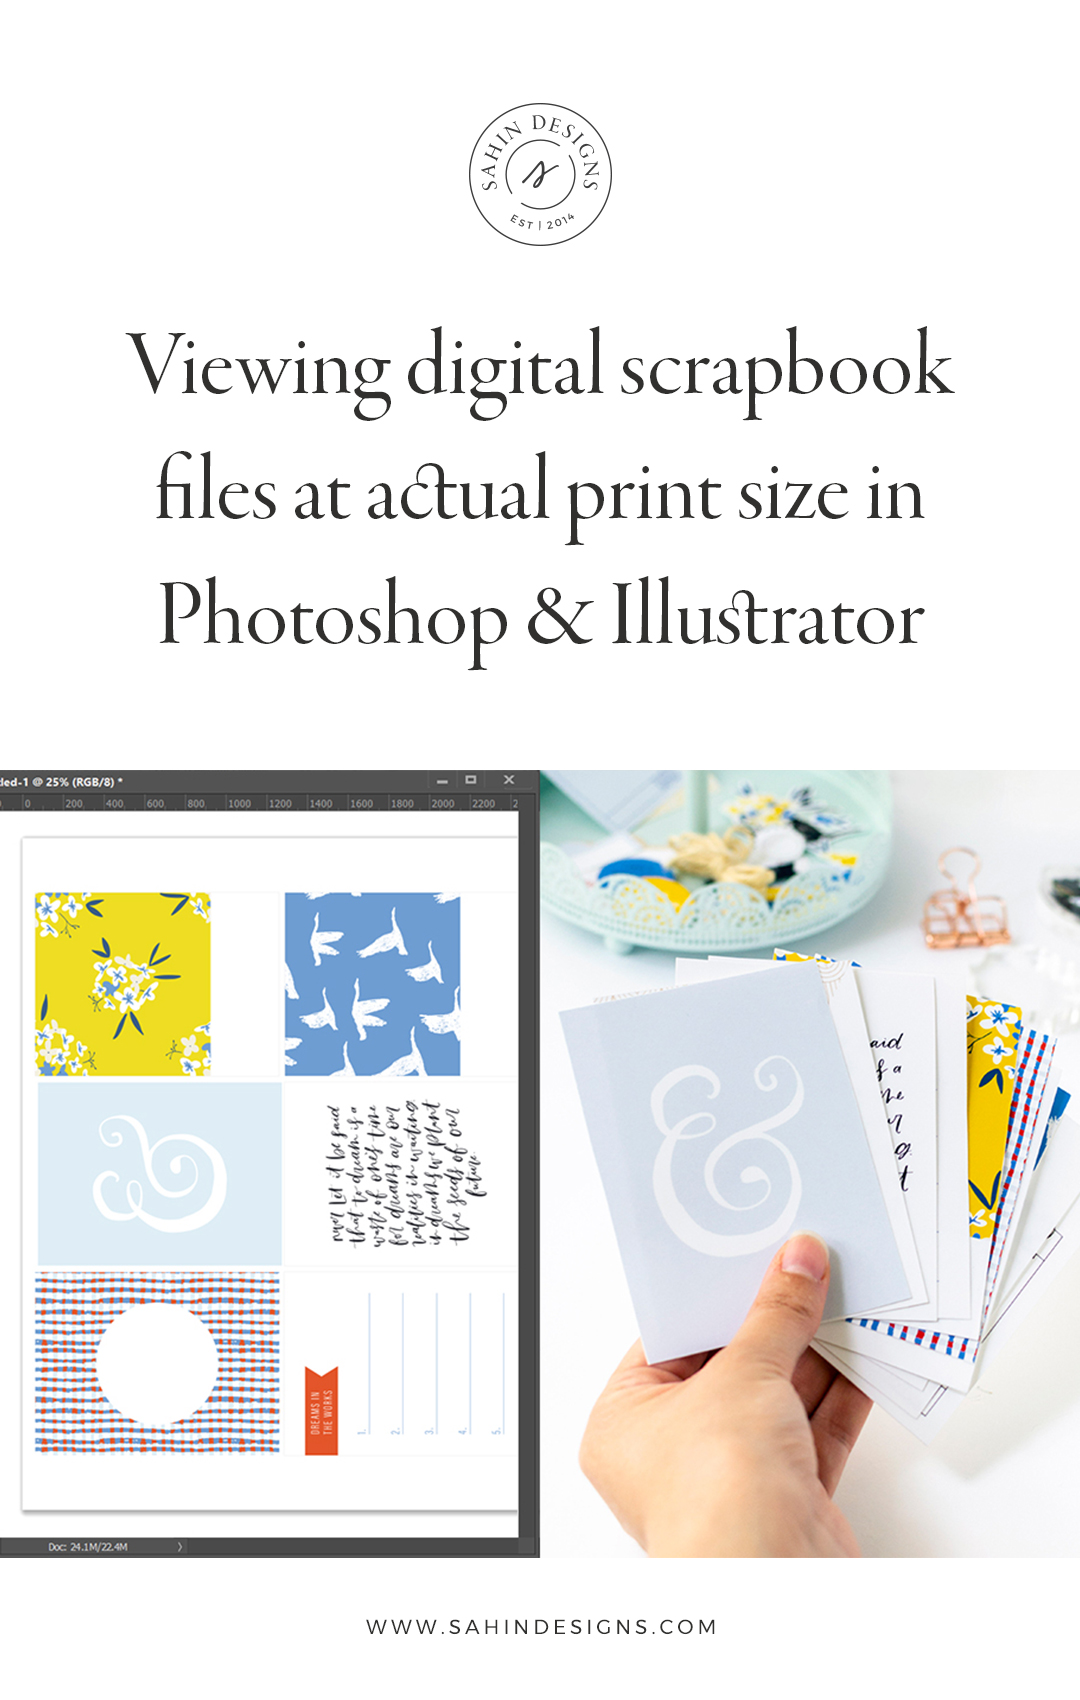 actual print size, Photoshop print size, Illustrator print size, scrapbook tip